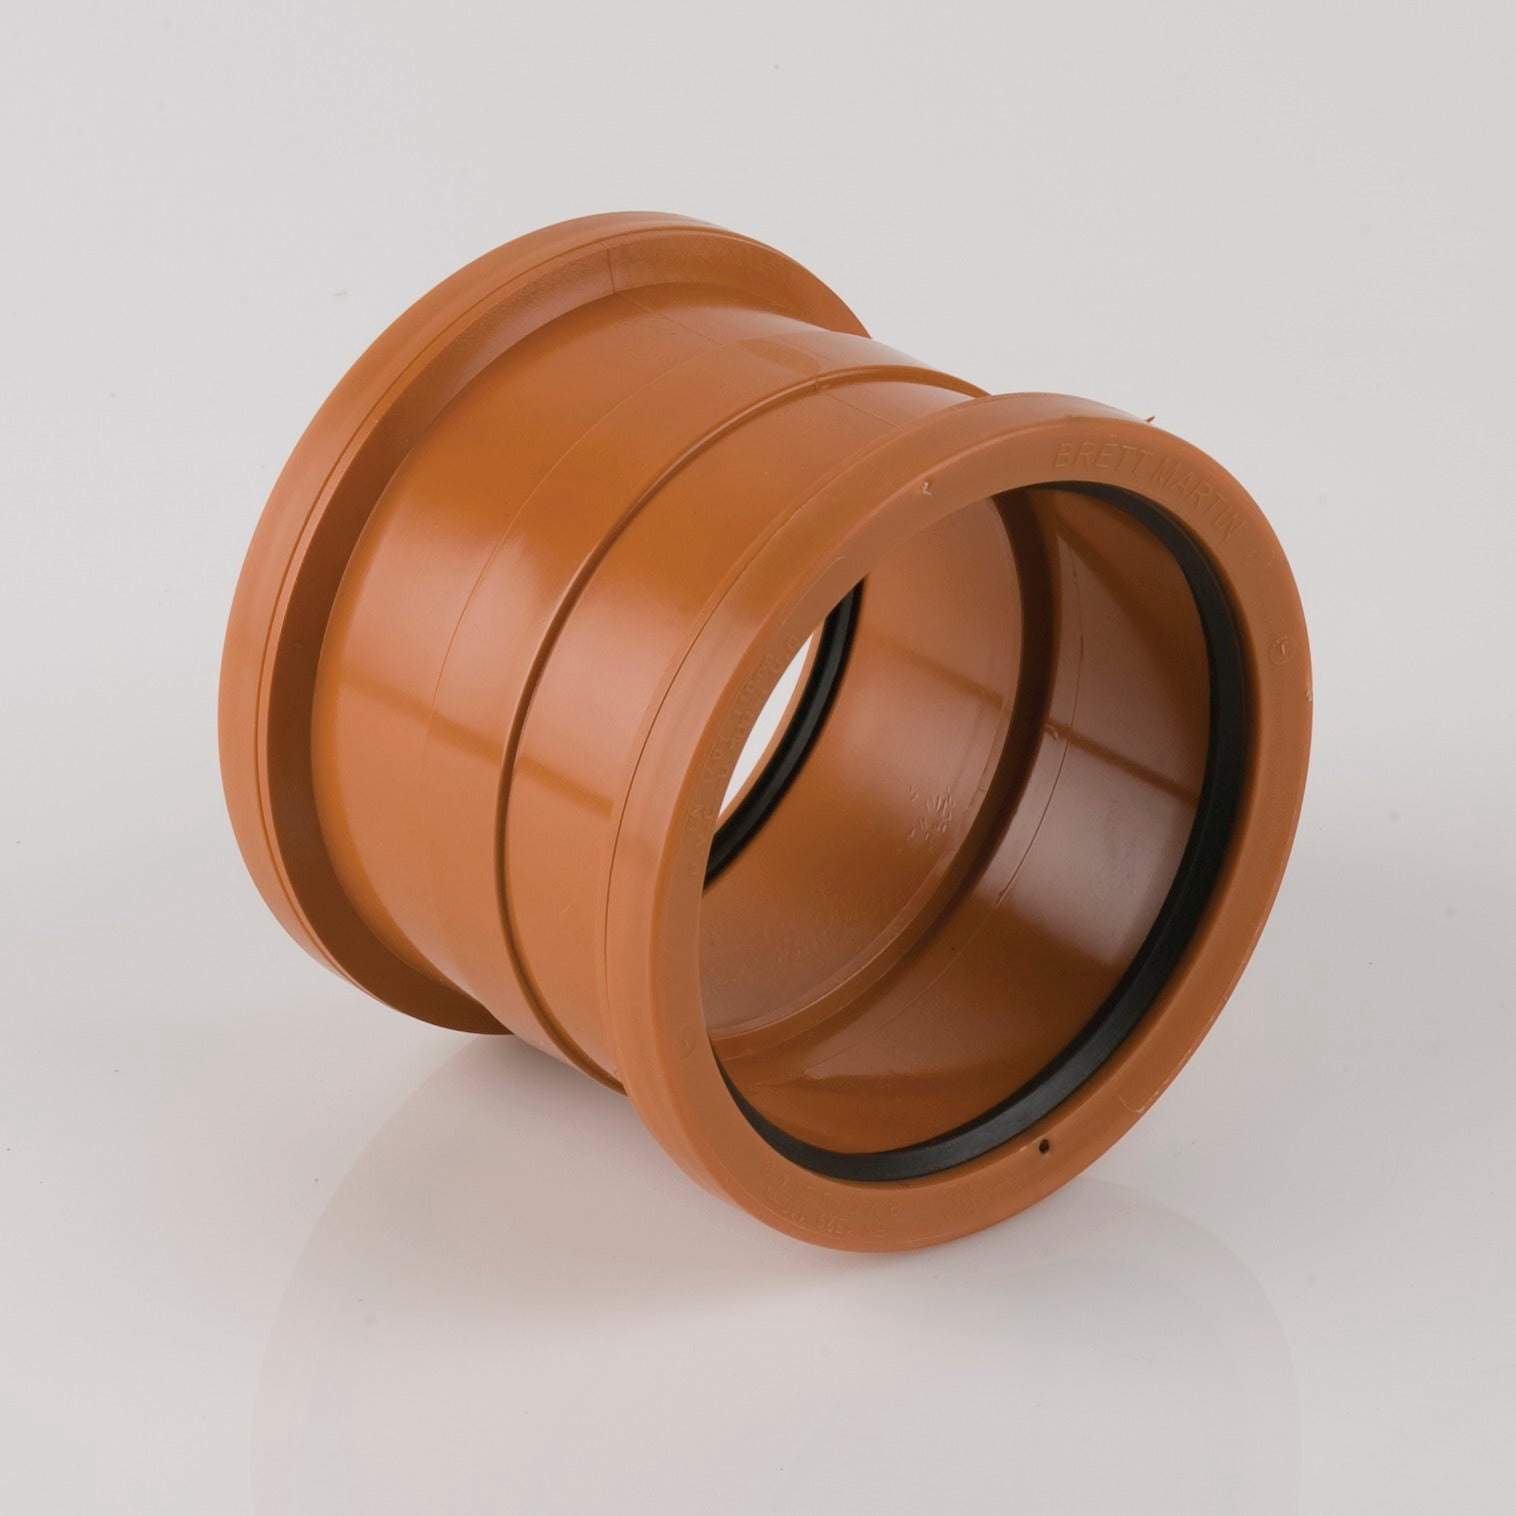 110mm Double Socket Drainage Pipe Connector (Terracotta Orange)